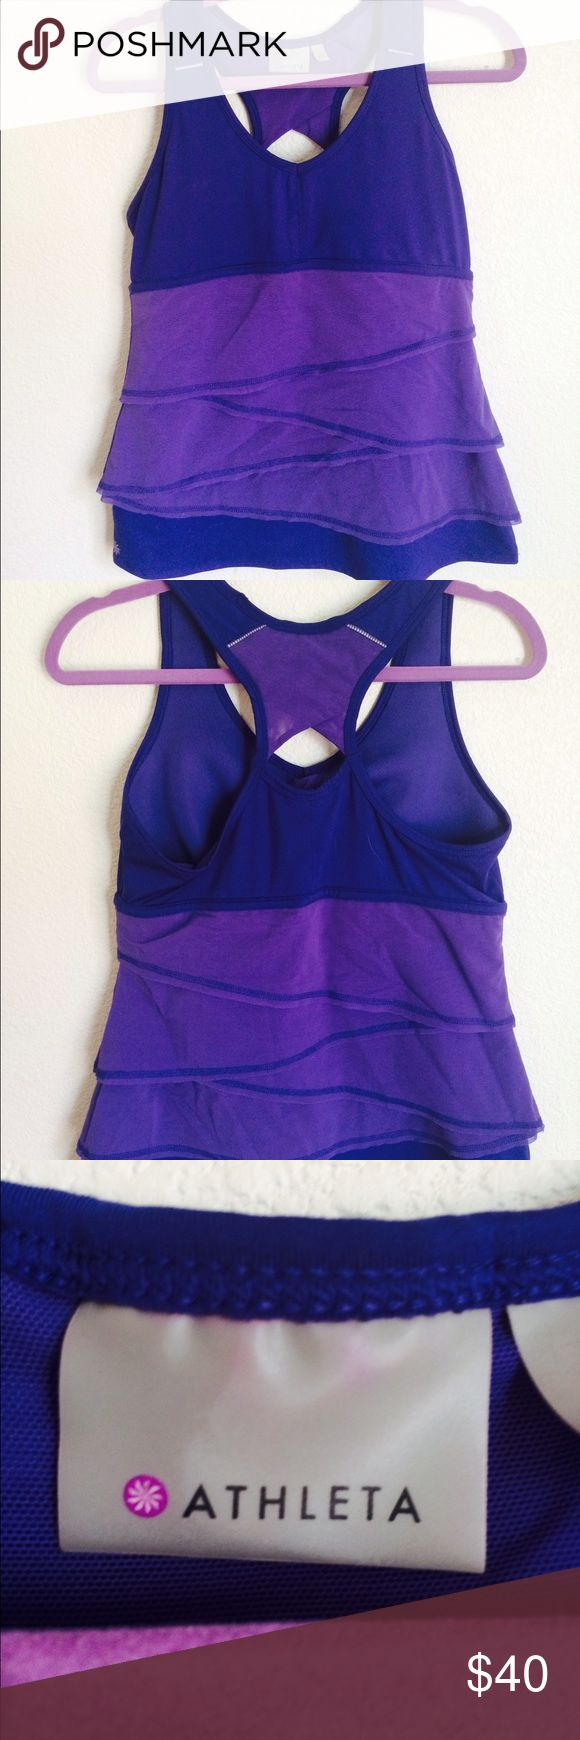 Athleta yoga top You thought that hot yoga teacher was smiling at you before? Well once you walk into the studio wearing this beautiful purple athletic top, he won't be able to keep his eyes off of you! It has only been worn once, and is in great shape, just like you will be once you make an offer. What are you waiting for? Yoga starts soon! Built in bra, sheer ruffles and razor back. Athleta Tops Tank Tops